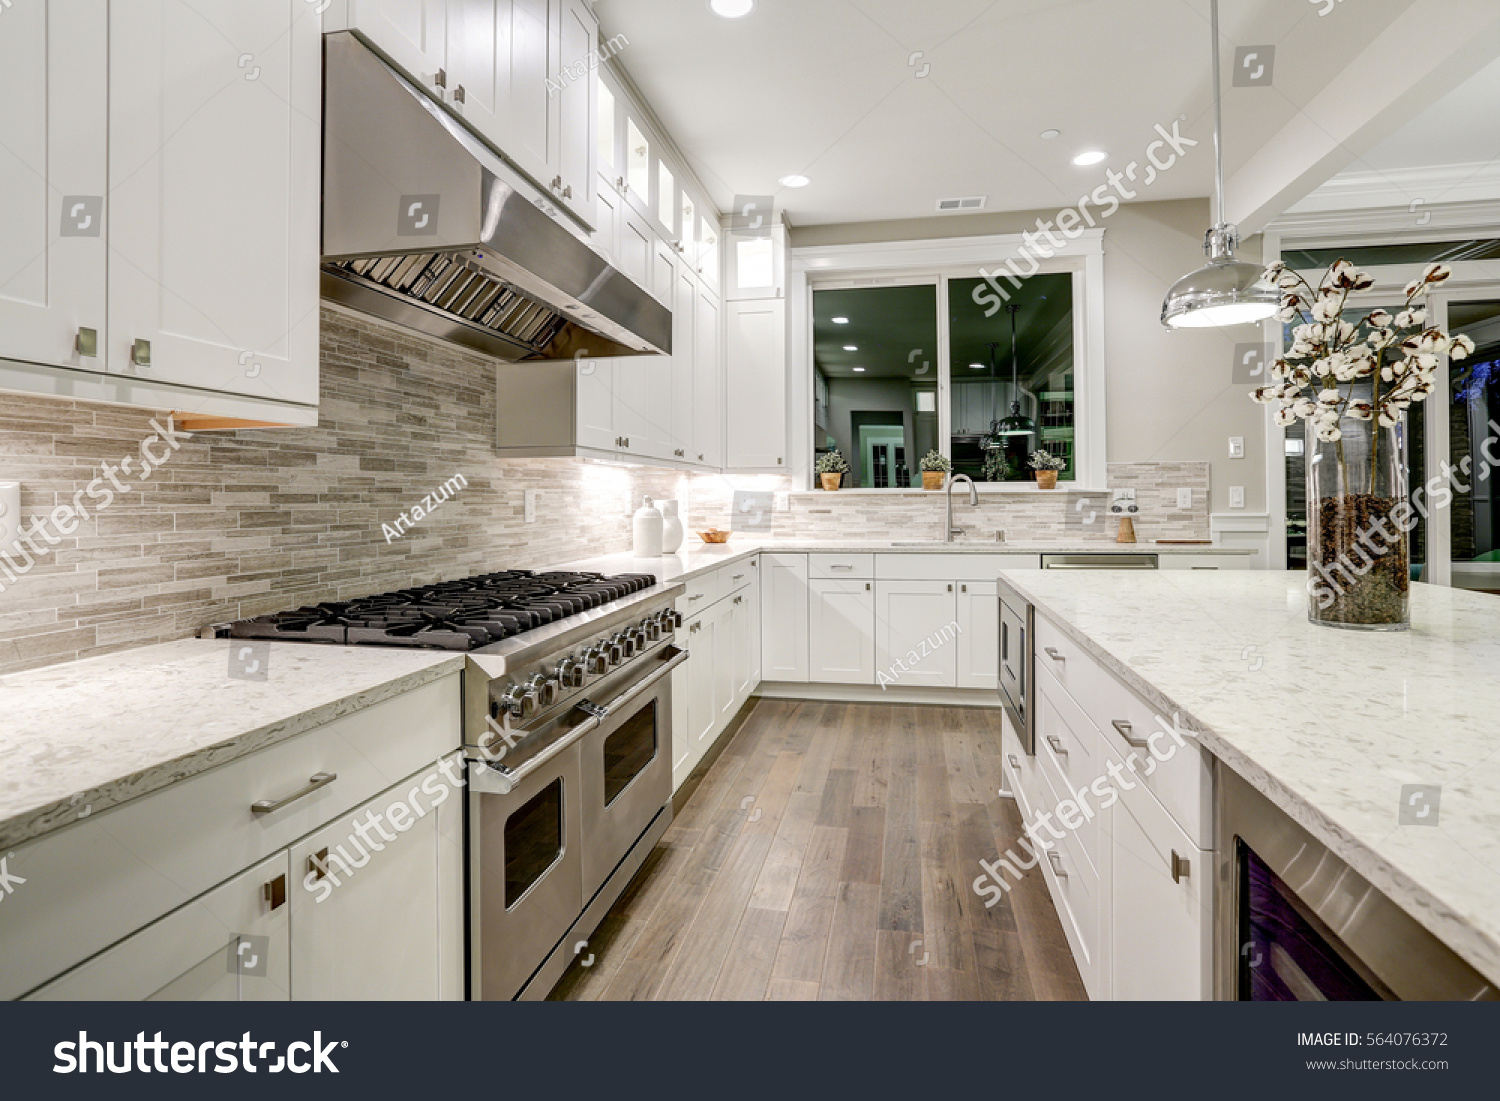 Gourmet Kitchen Features White Shaker Cabinets Stock Photo Edit Now 564076372